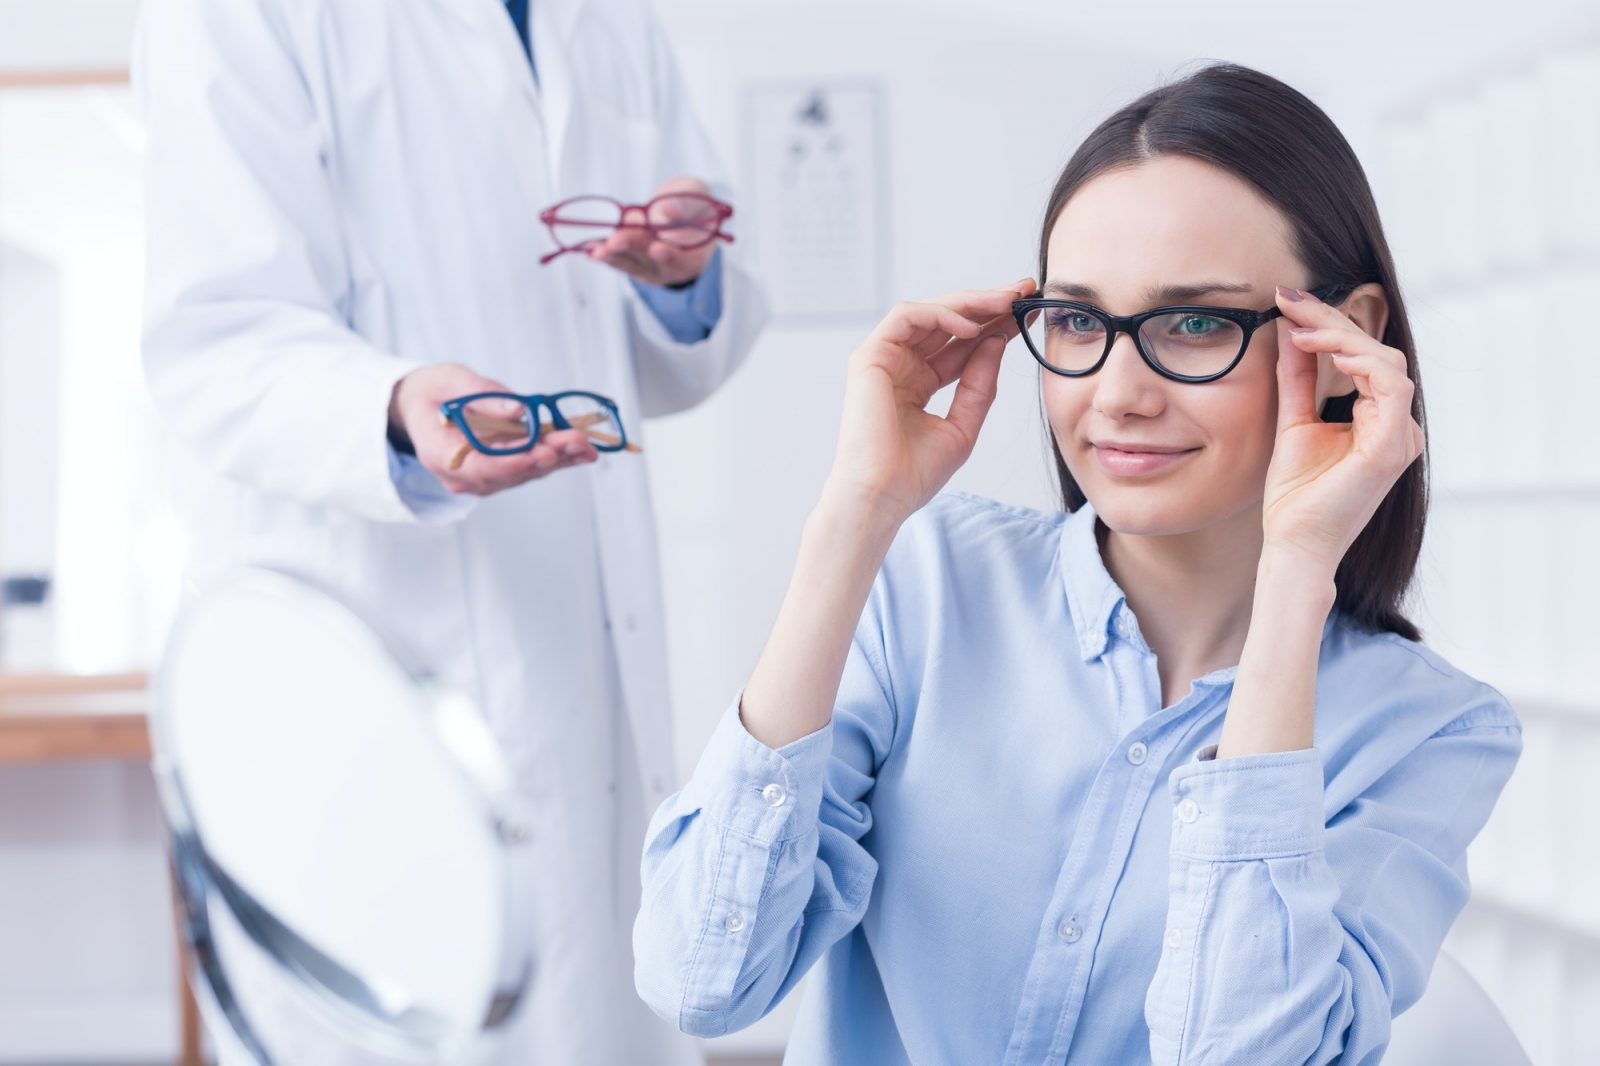 Optician with eyeglasses and client